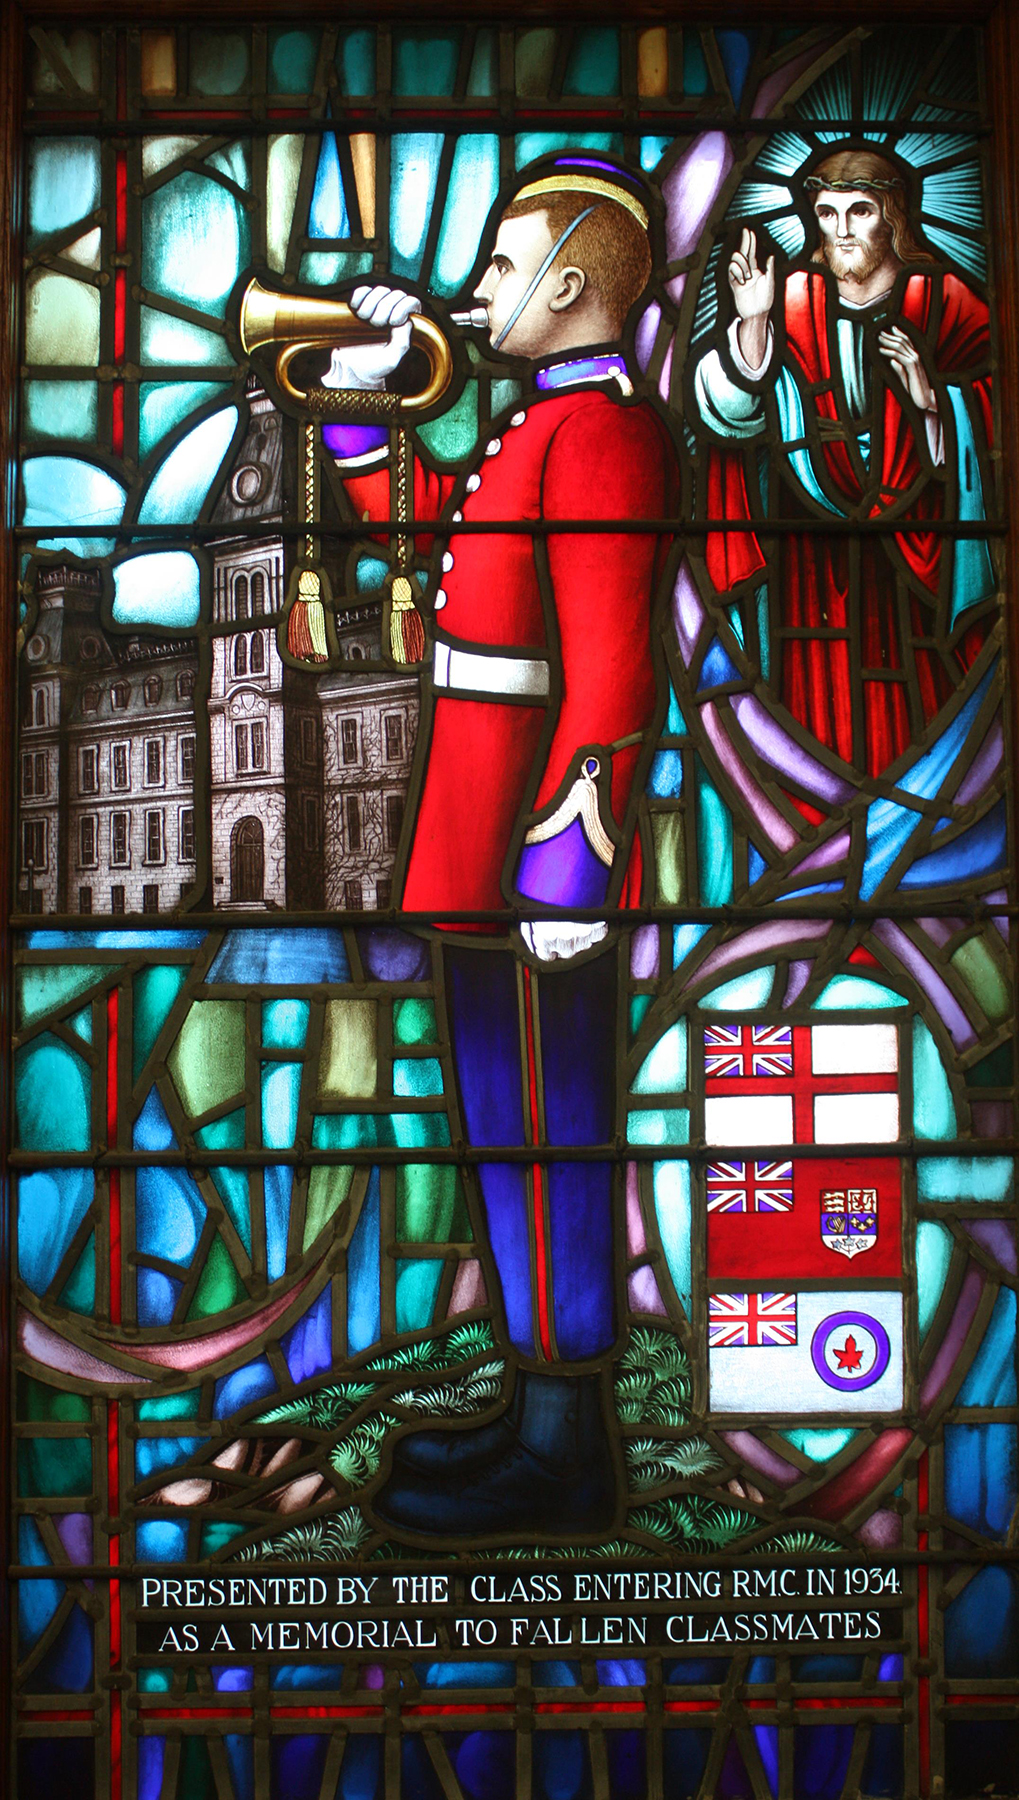 "A memorial stained glass window placed by the Class of 1934 in Yeo Hall Memorial Hall, outside the chapels at the Royal Military College of Canada in Kingston, Ontario, depicts an officer cadet bugler sounding ""Last Post"". The inscription reads: ""Presented by the class entering RMC in 1934 as a memorial to fallen classmates"". PHOTO: Courtesy of the Royal Military College Museum"